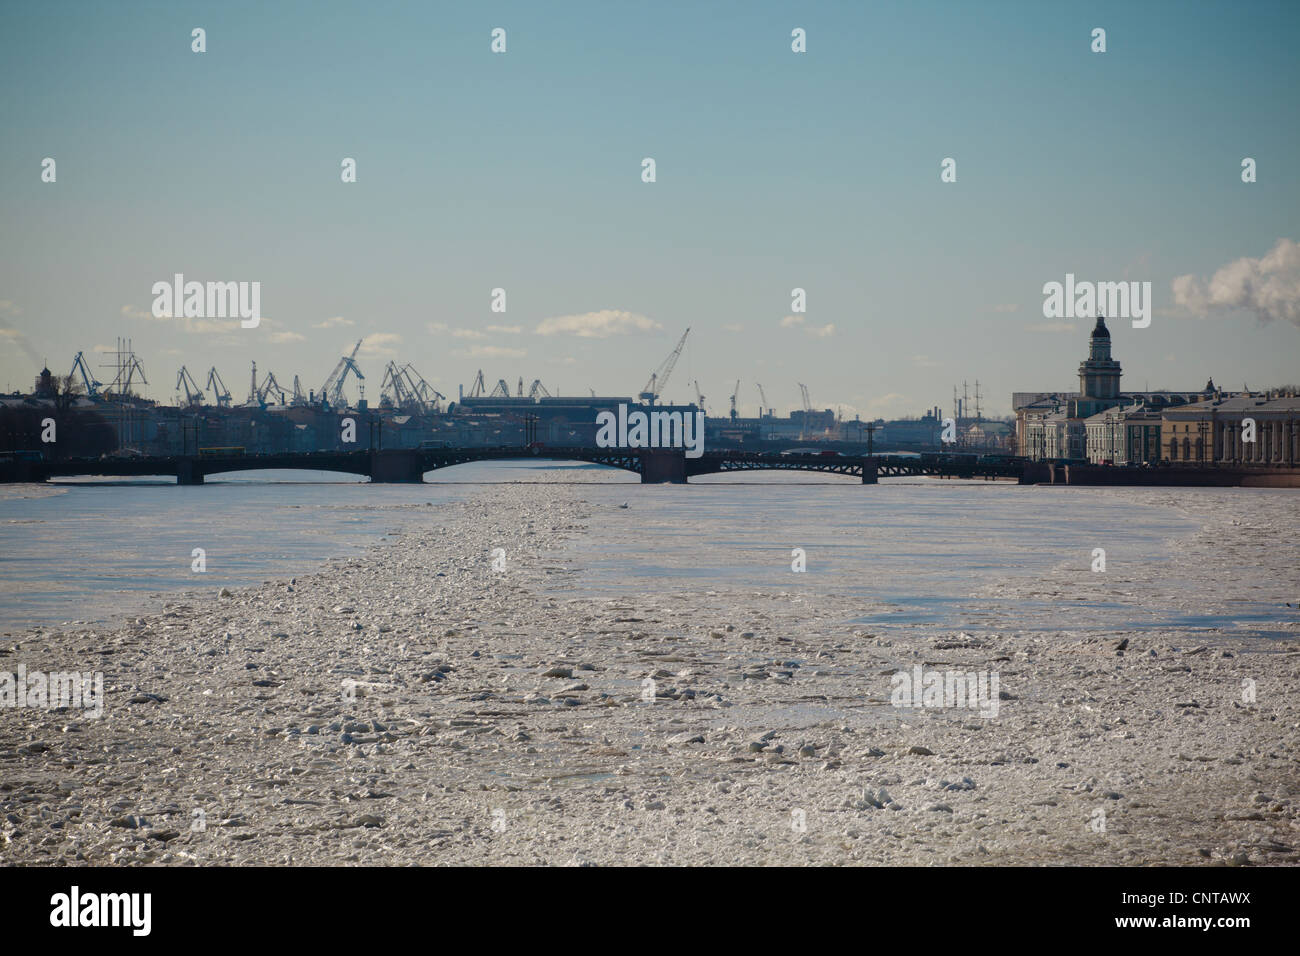 Russia, Saint-Petersburg,The Kunstkamera , the Peter the Great Museum of Anthropology and Ethnography, Palace Bridge,winter - Stock Image